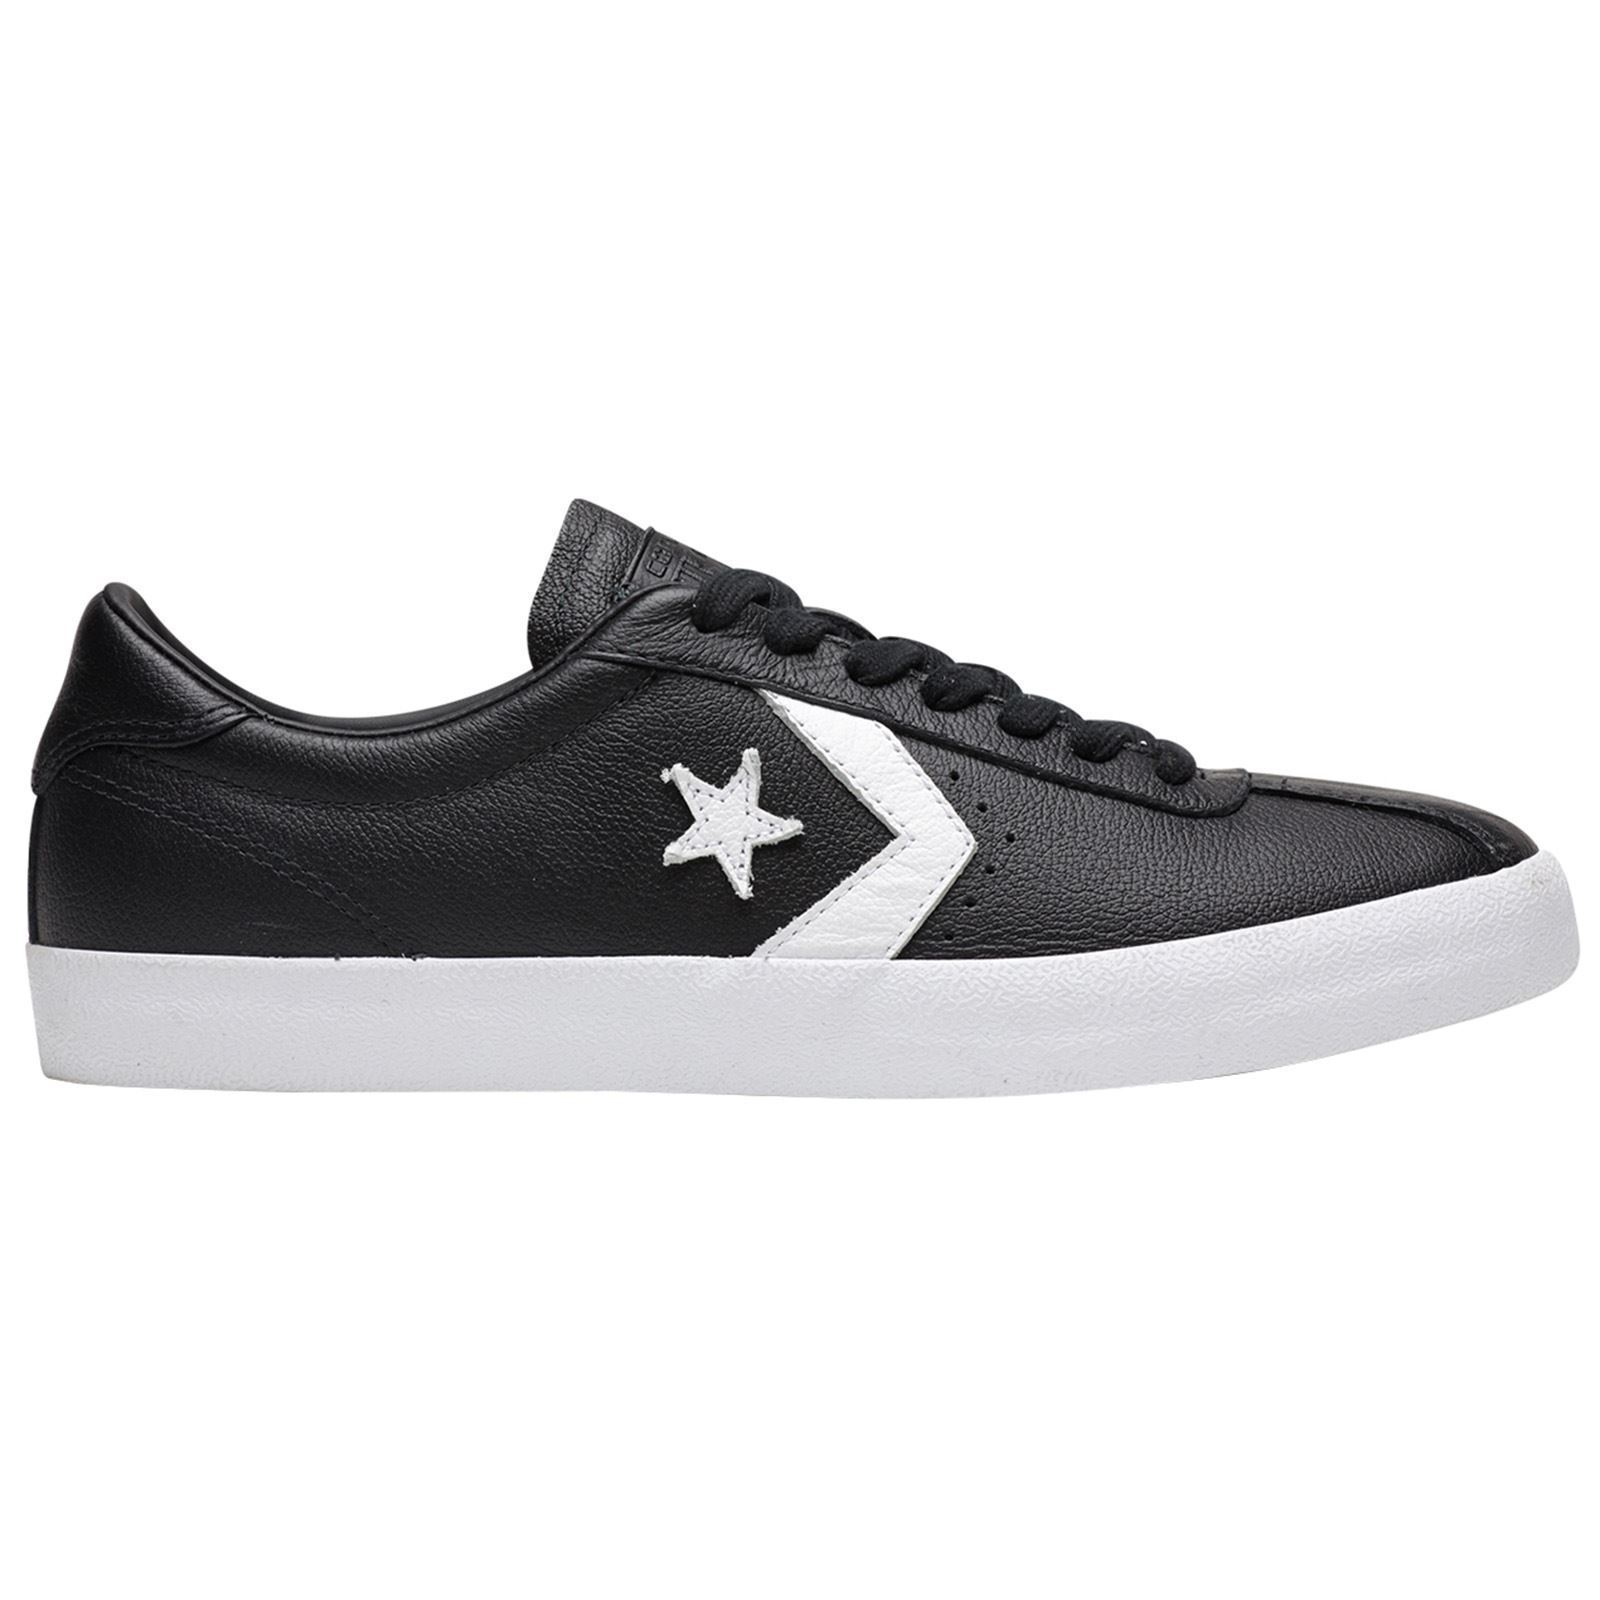 Converse Breakpoint Ox Black White Unisex Leather Retro Low-top Trainers